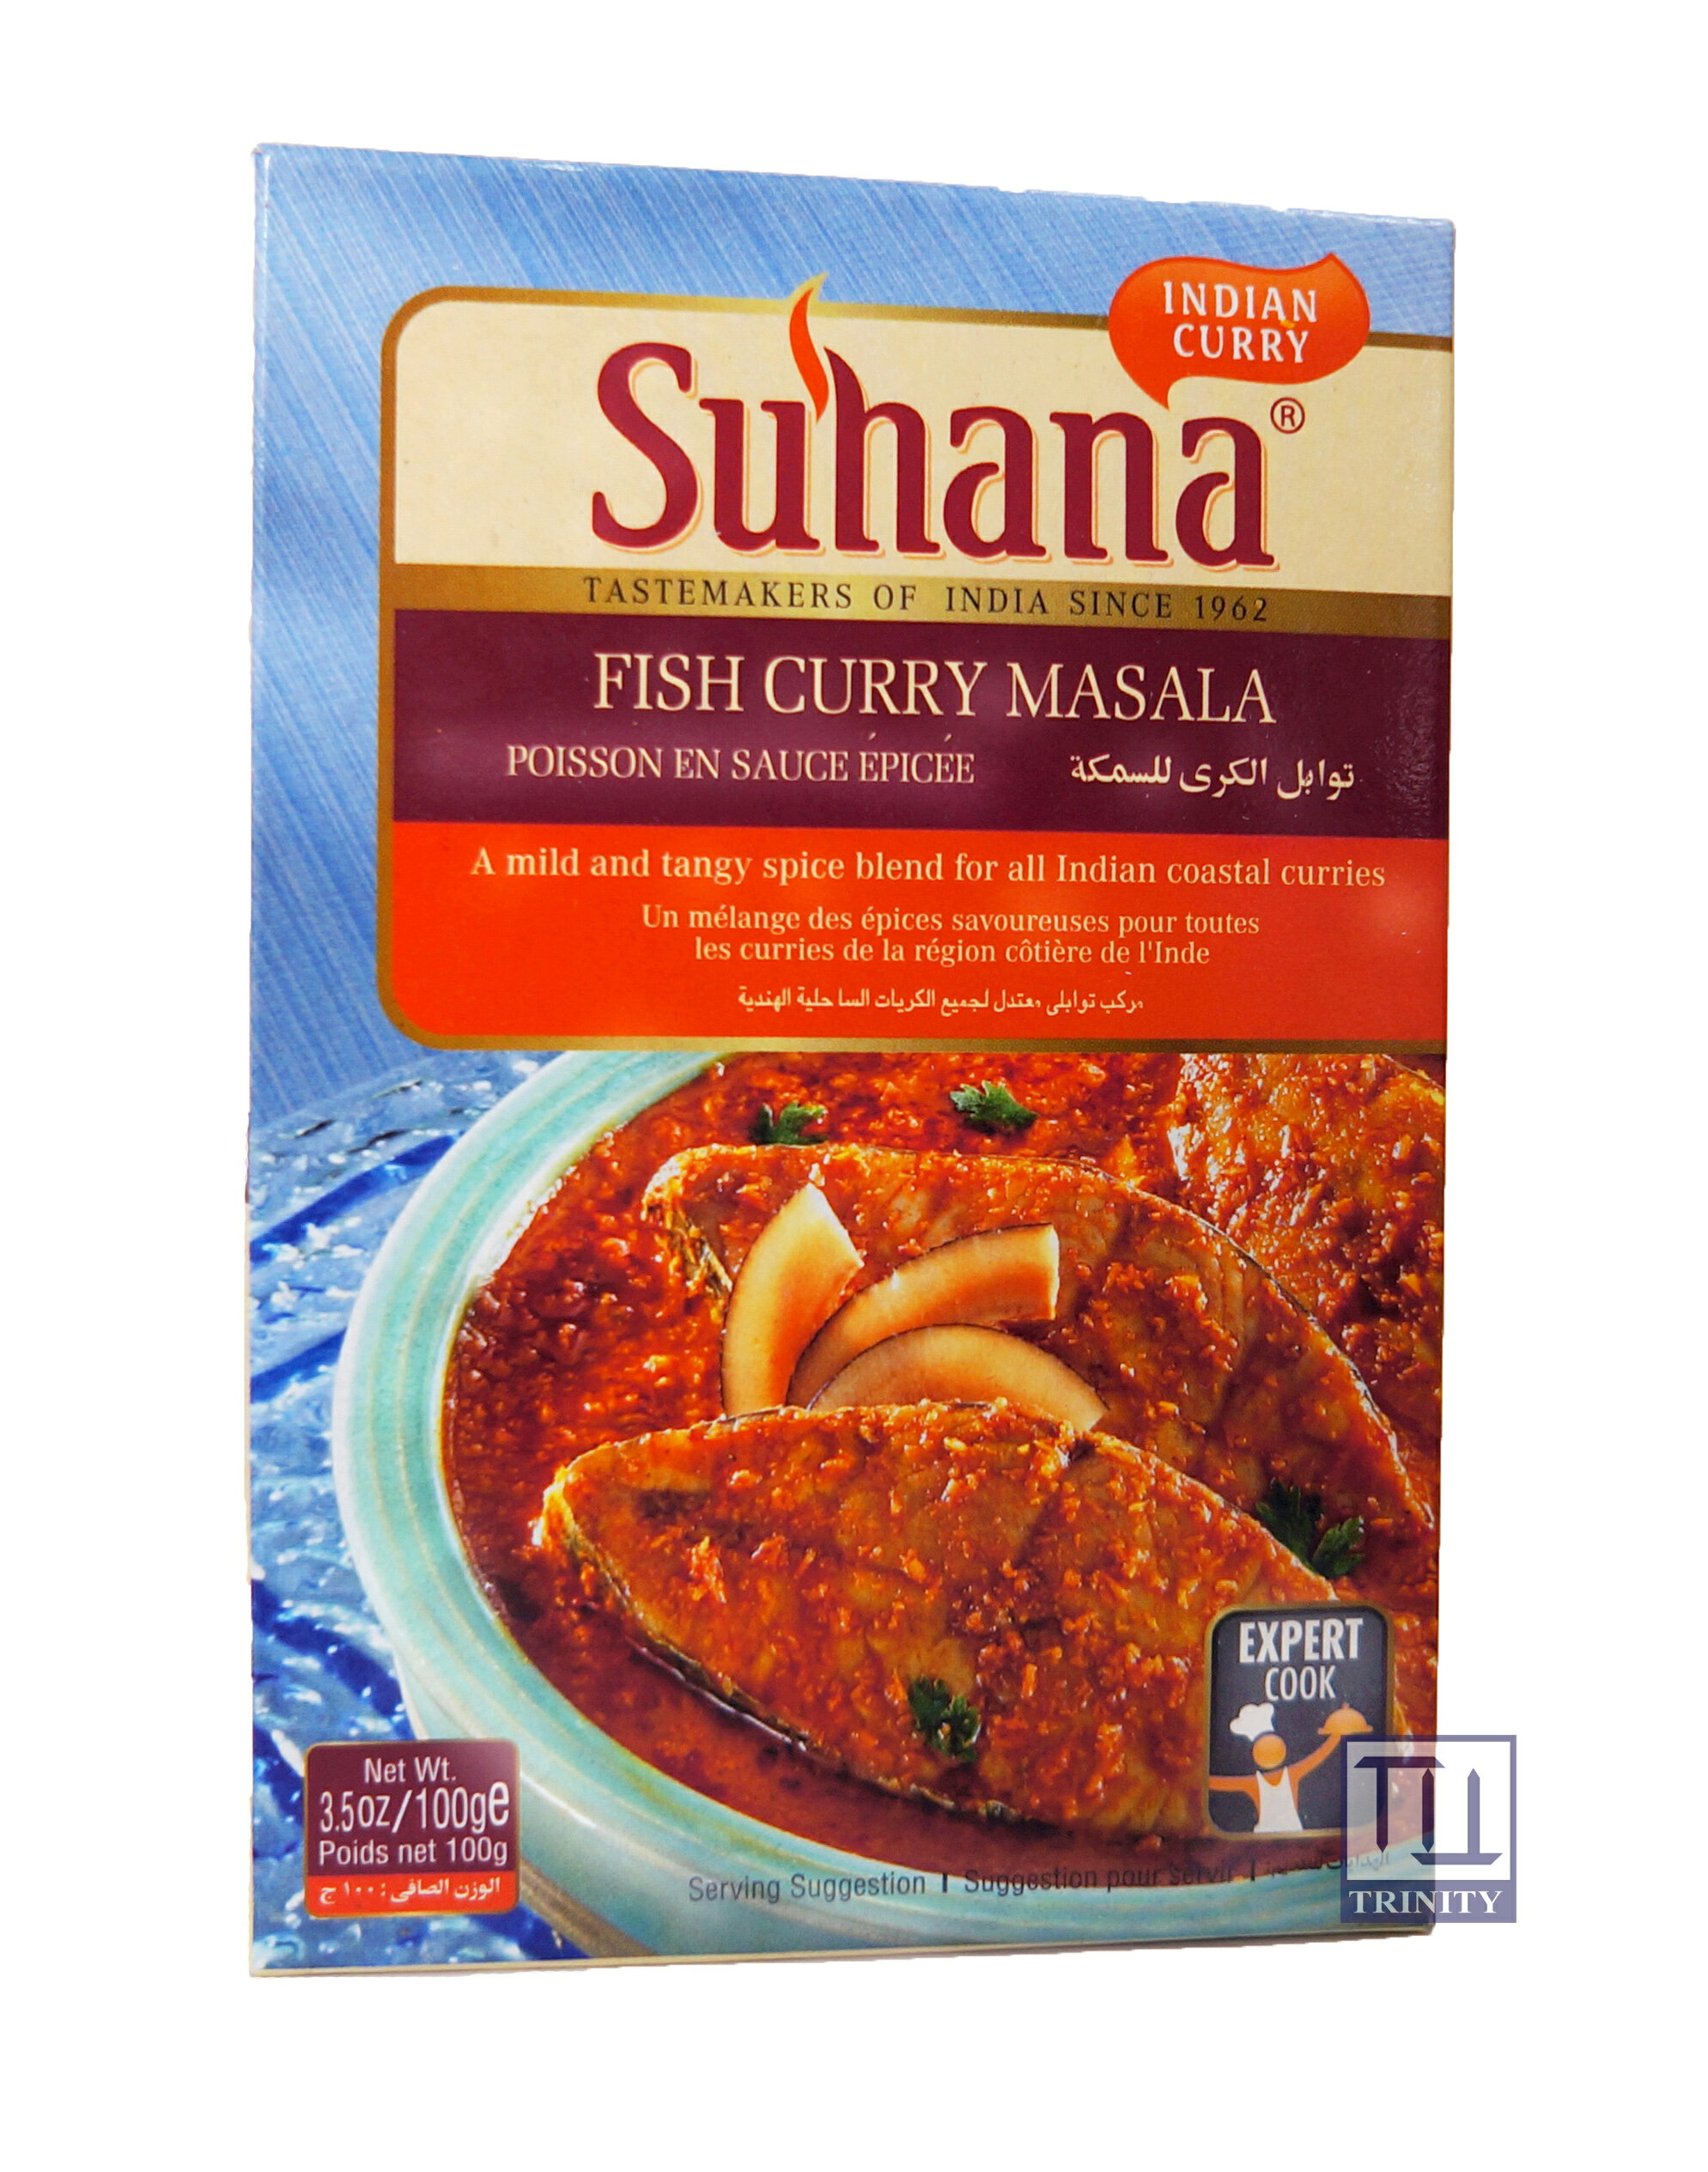 Suhana Fish Curry Masala 印度香料粉 (煮魚/ 海鮮用)